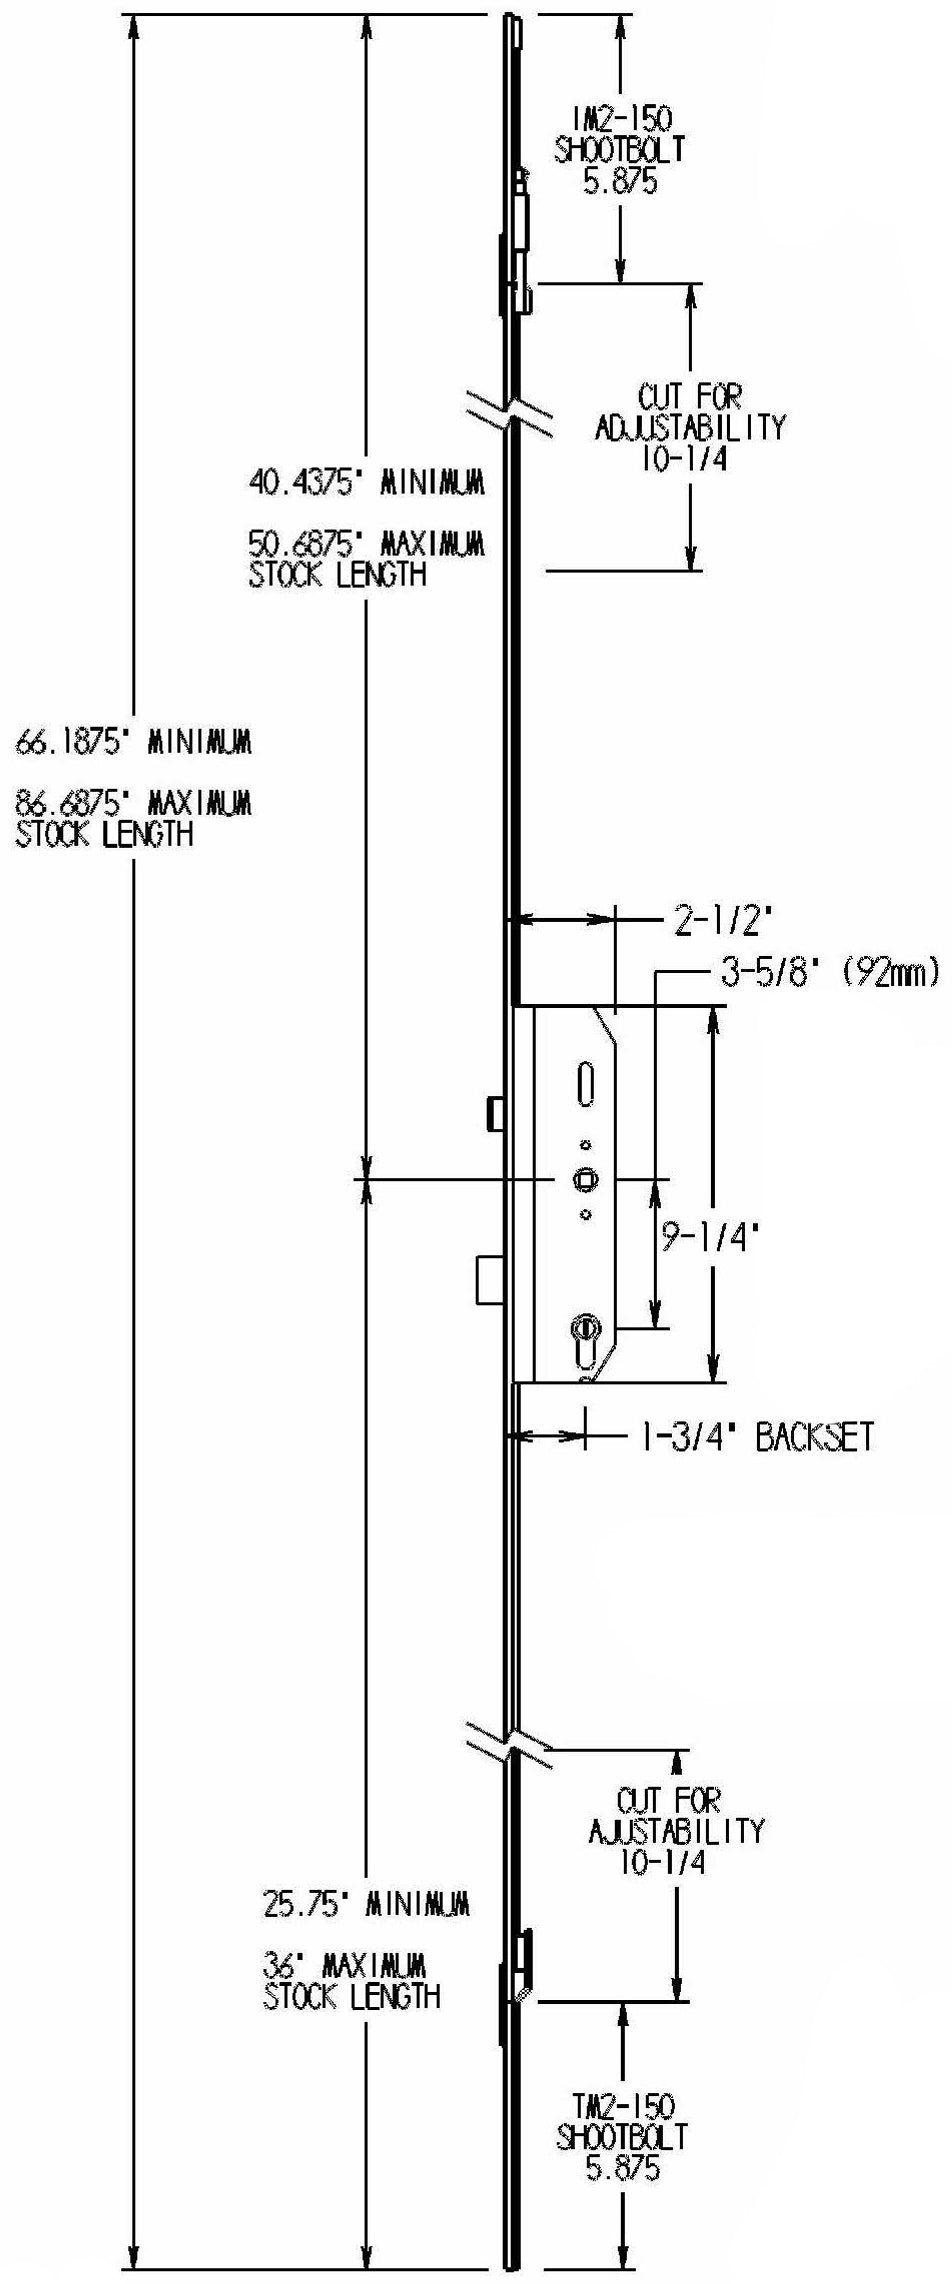 FPL 7003 Multipoint Specs